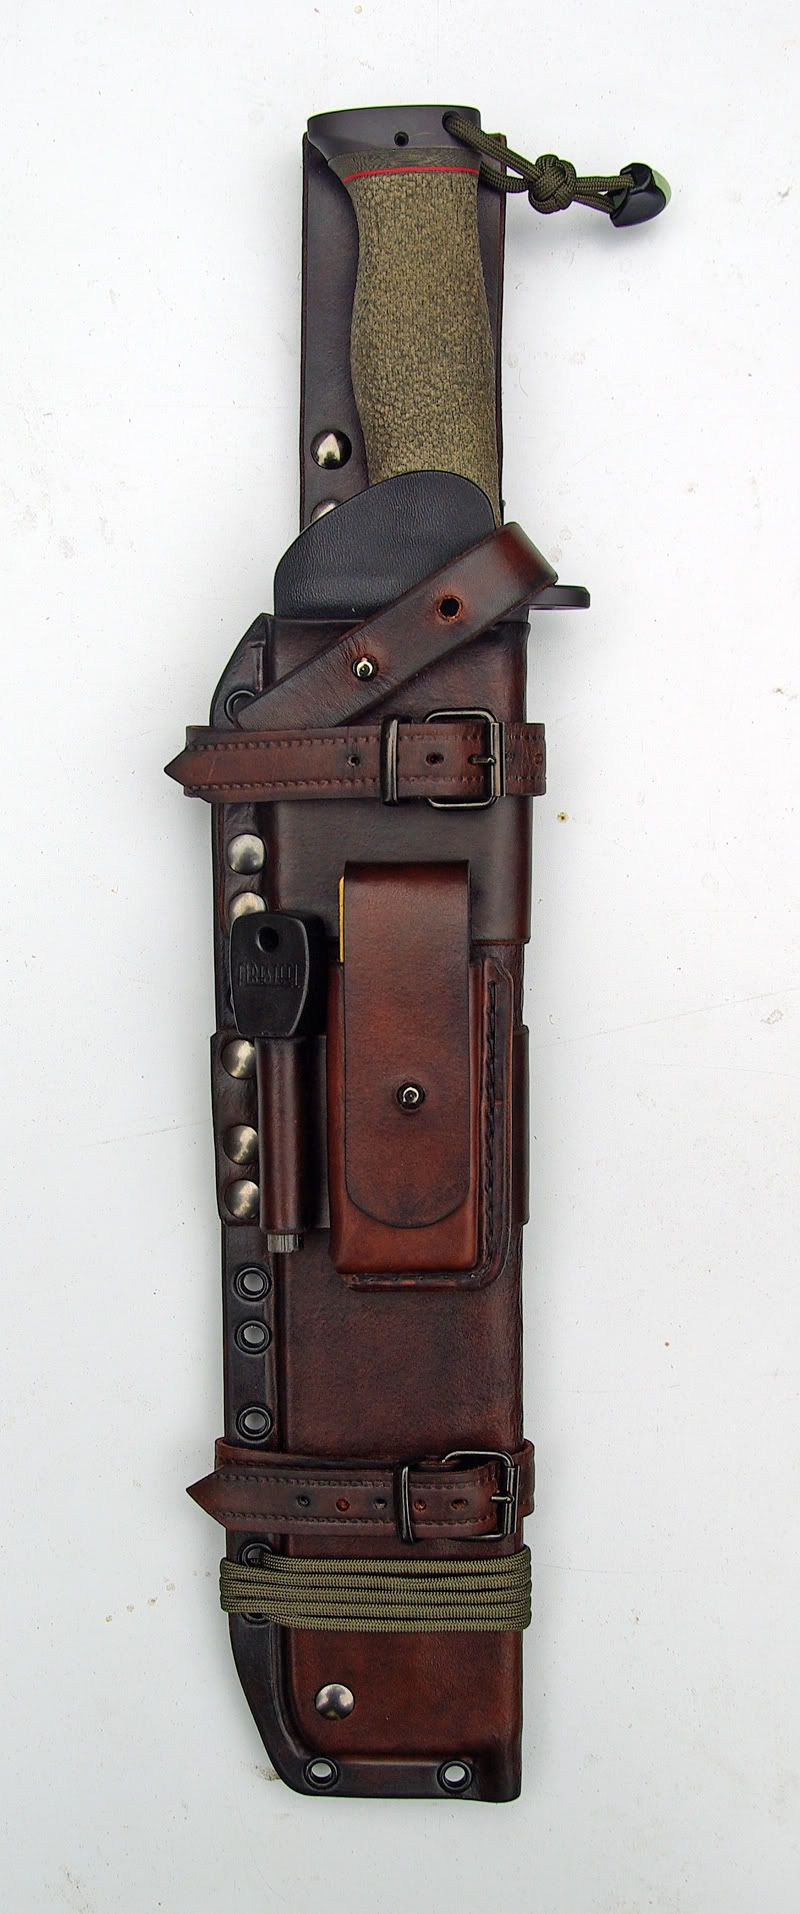 Glorious Knife Loop Case Holder Pocket Sheath Tool Belt Carry Edc Multi Fixed Leather Holster Pouch Bag Blade Camp Scabbard Hunt Outdoor Utility Knife Office & School Supplies